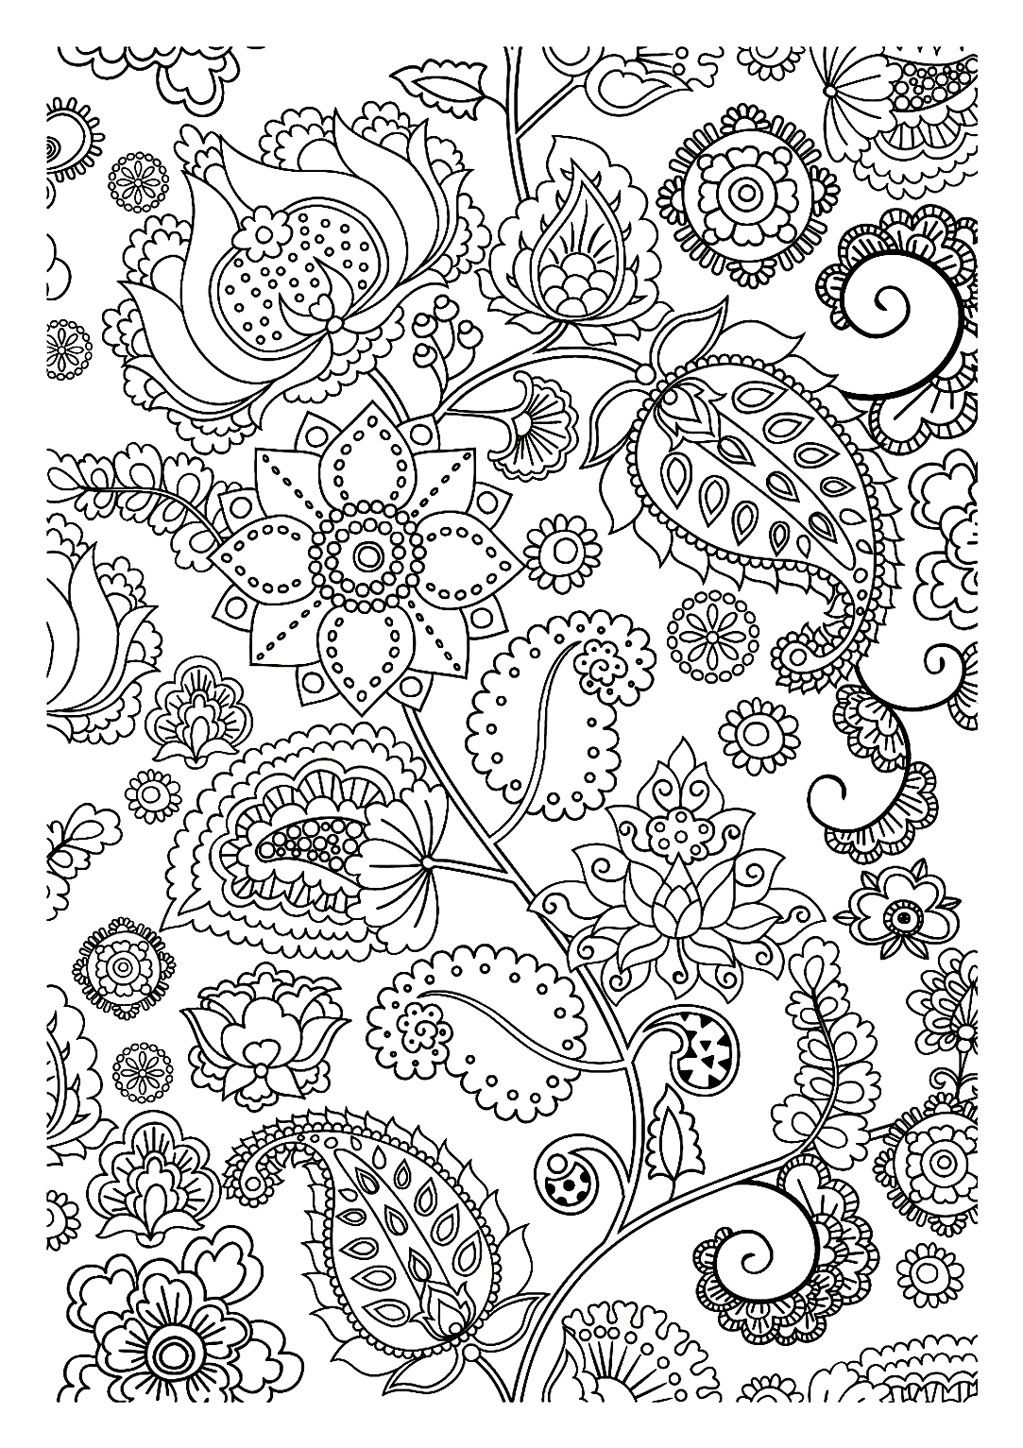 To Print This Free Coloring Page Coloring Adult Flowers Zen